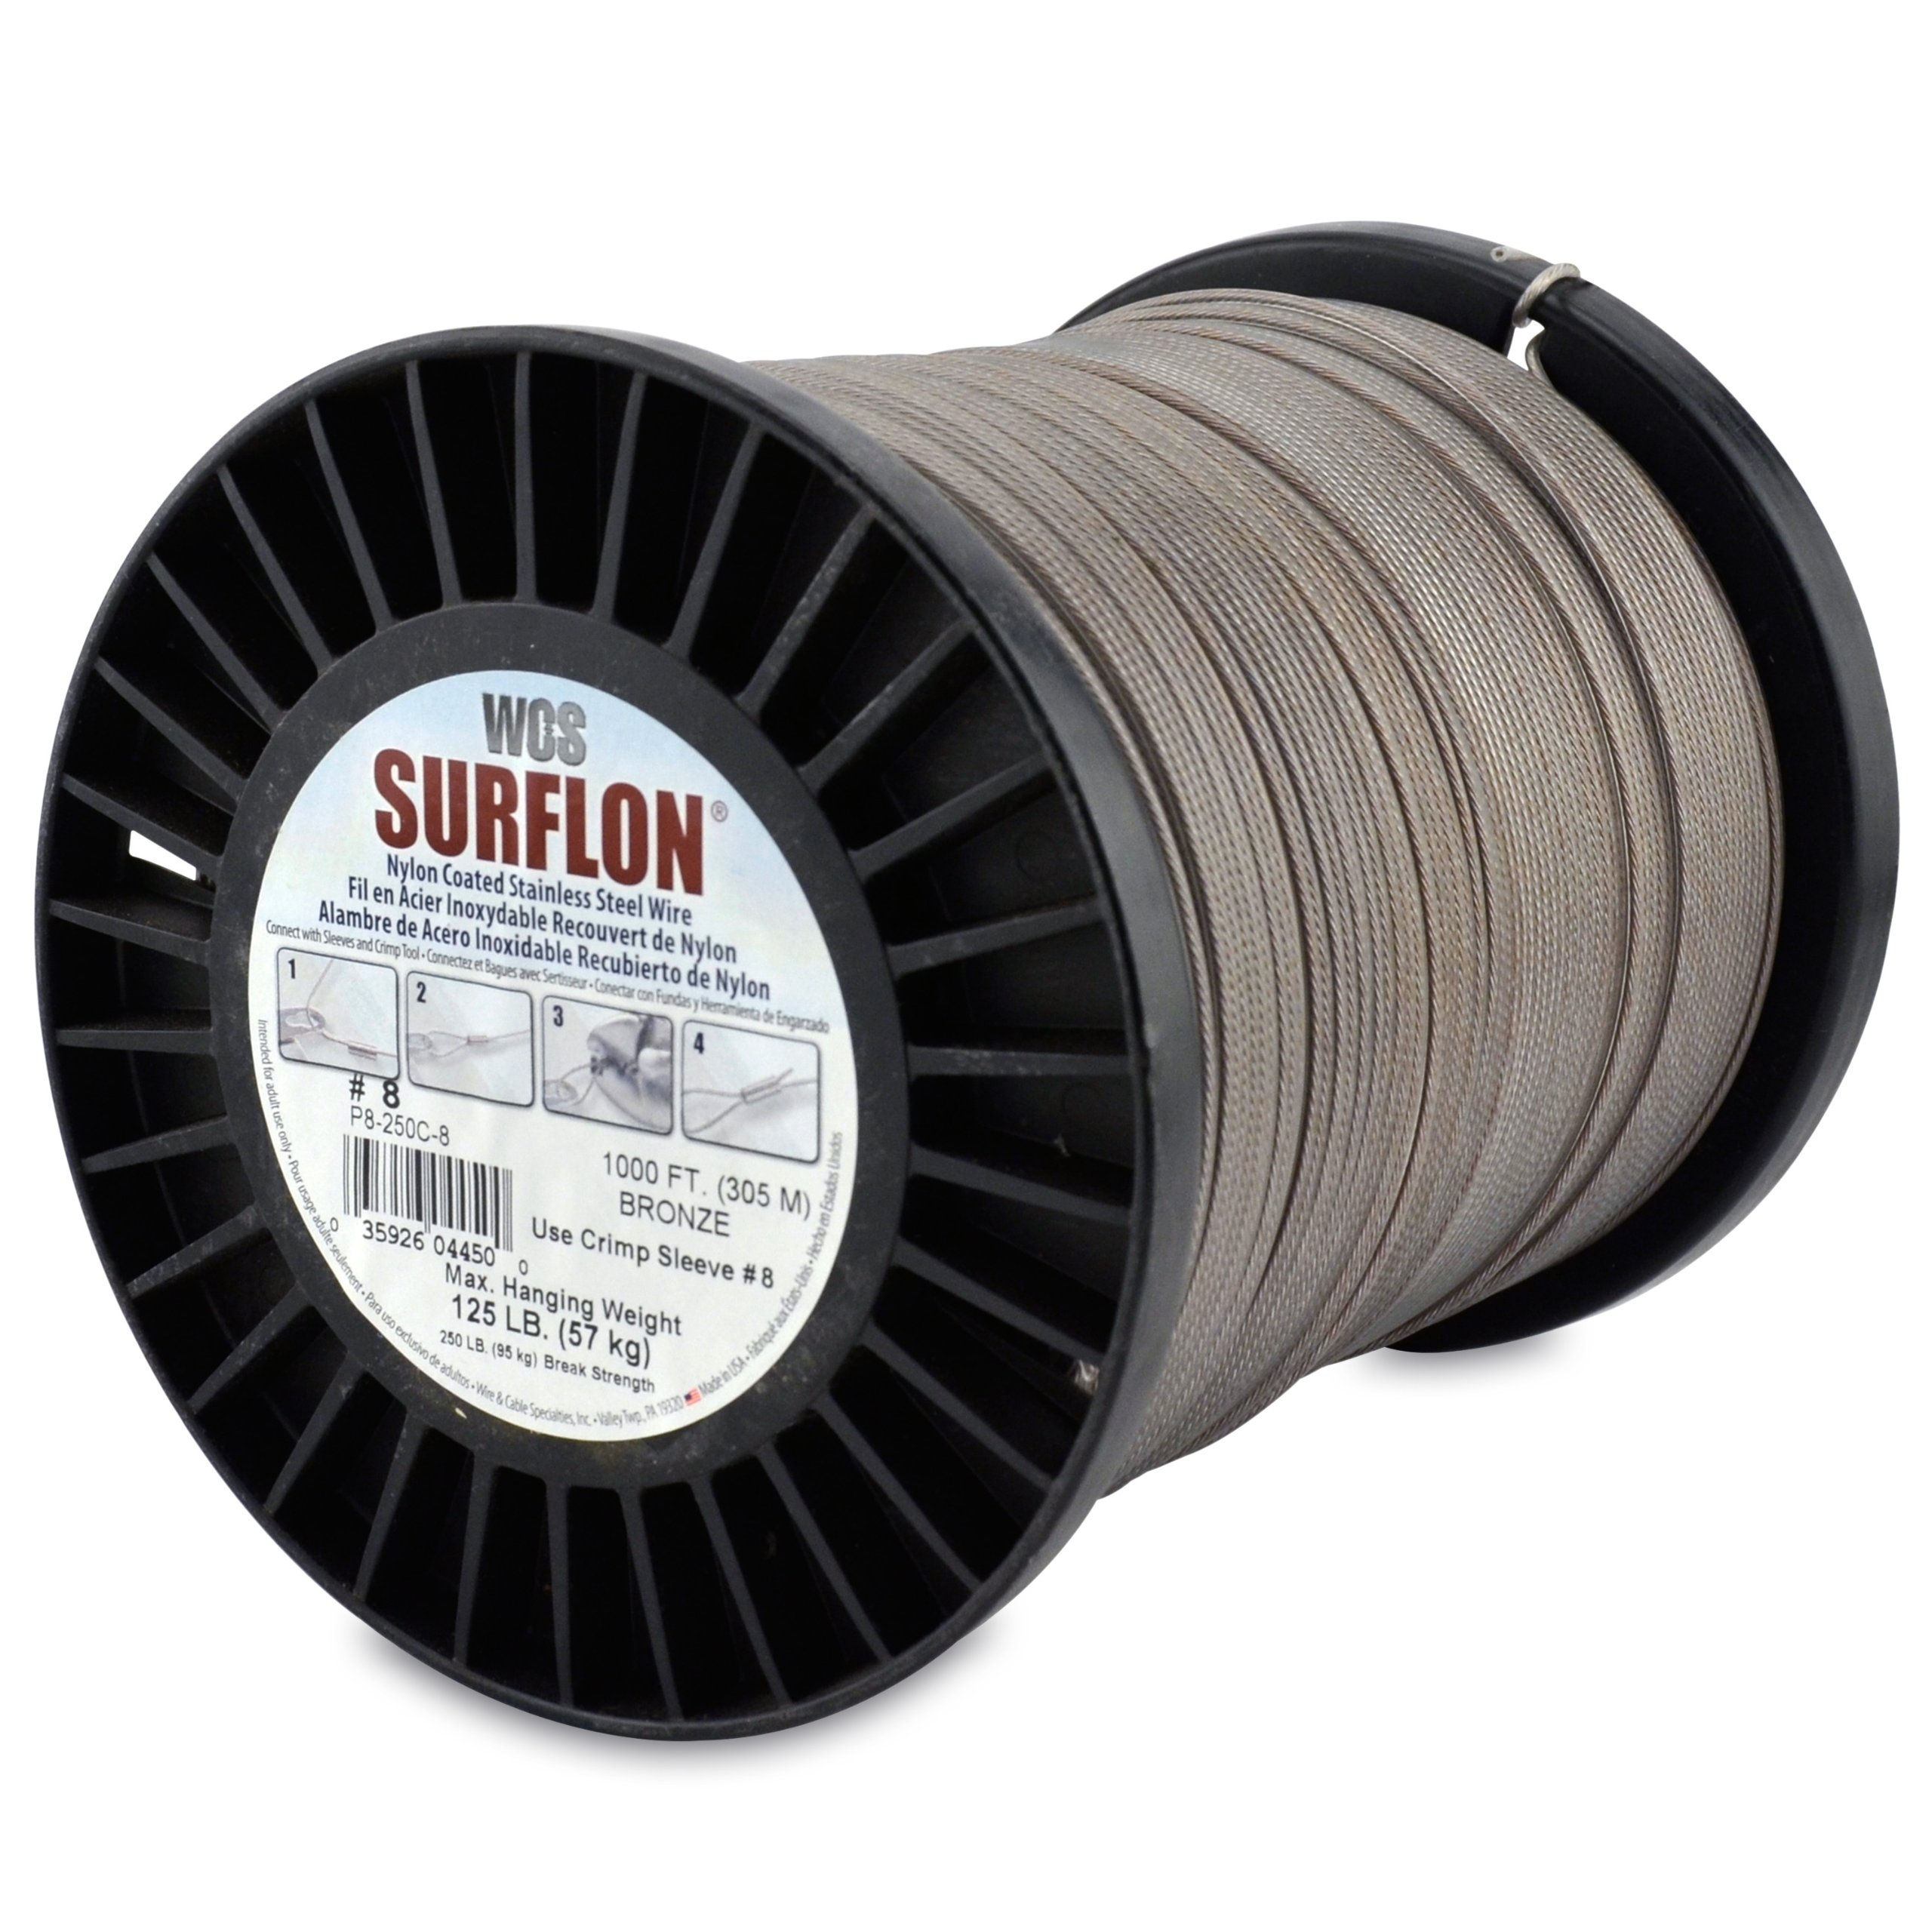 Surflon Size 8 - 125-Pound Break 1000-Feet Crimping Picture Wire Nylon Coated Stainless Steel Bronze